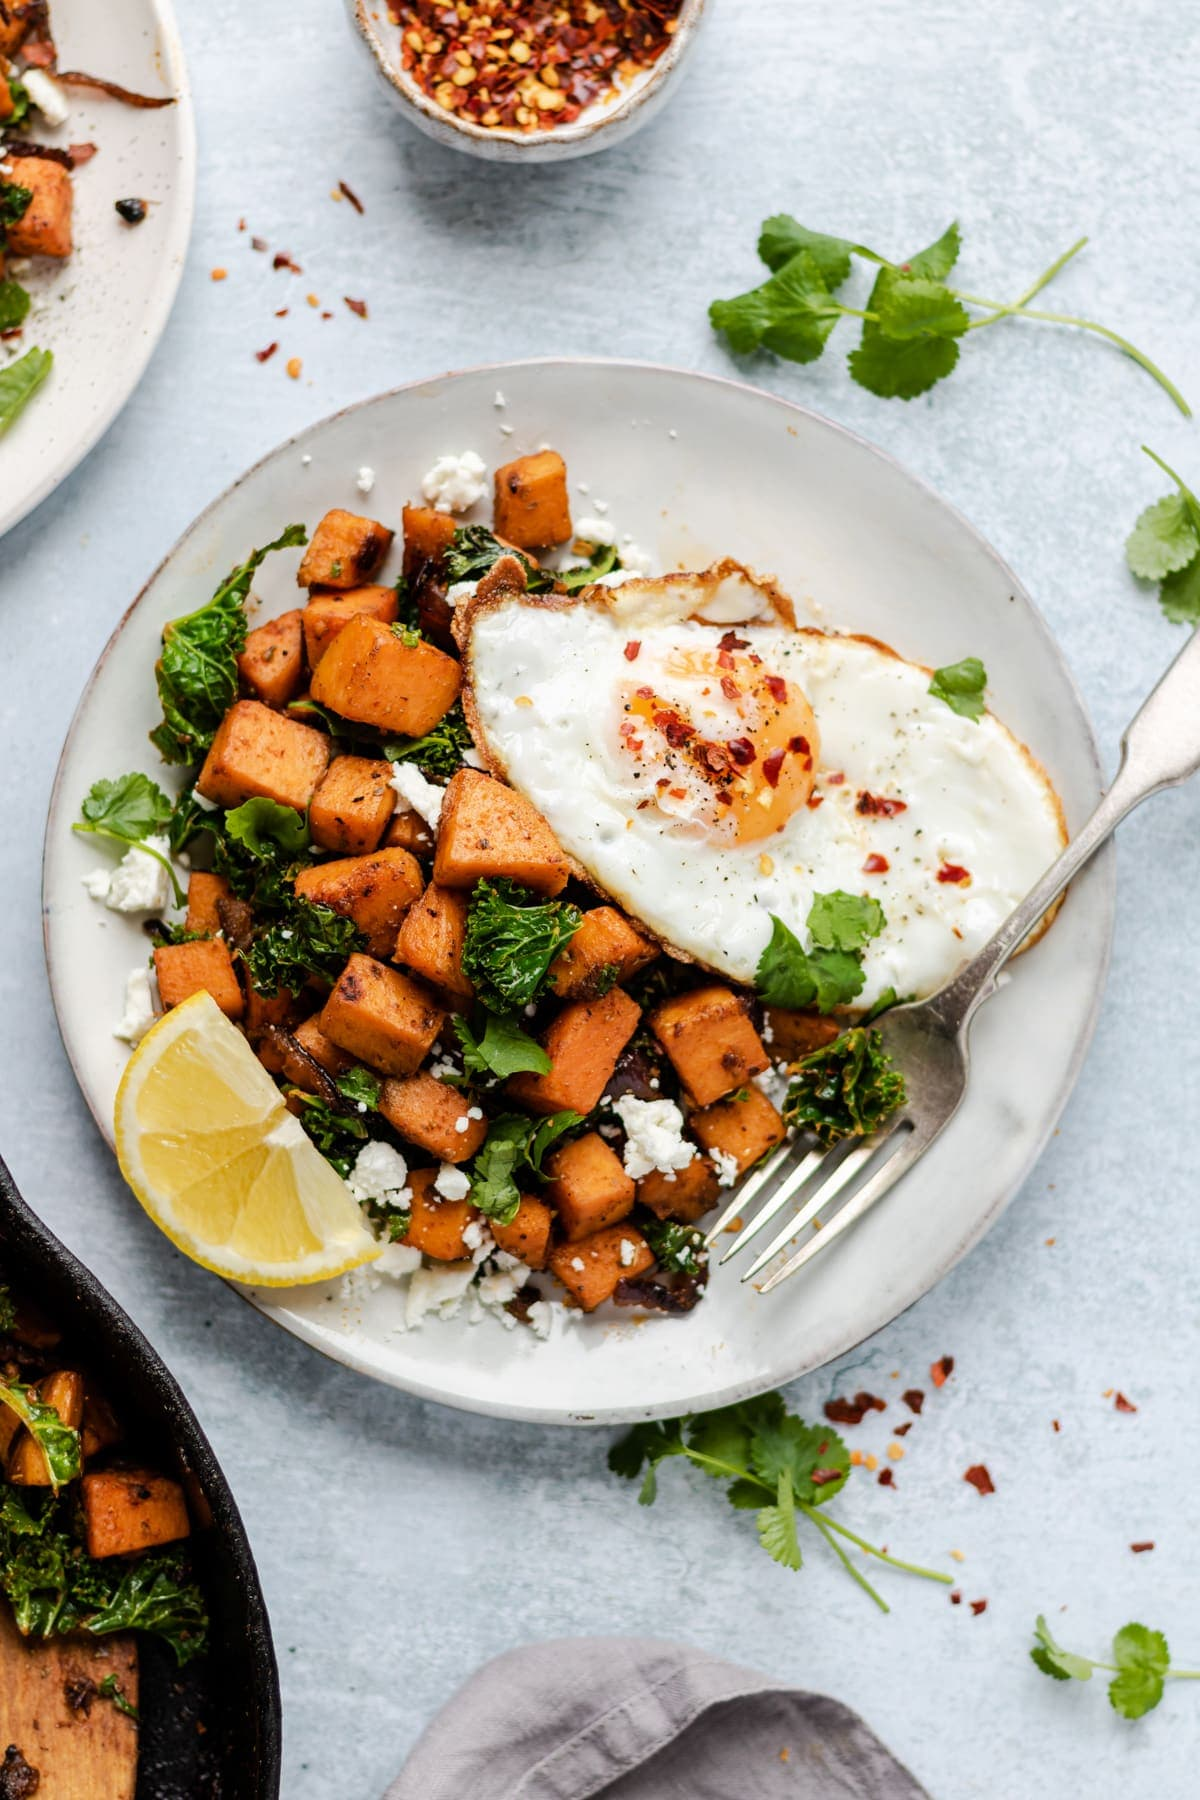 Sweet potatoes and kale with crumbled feta topped with a fried egg